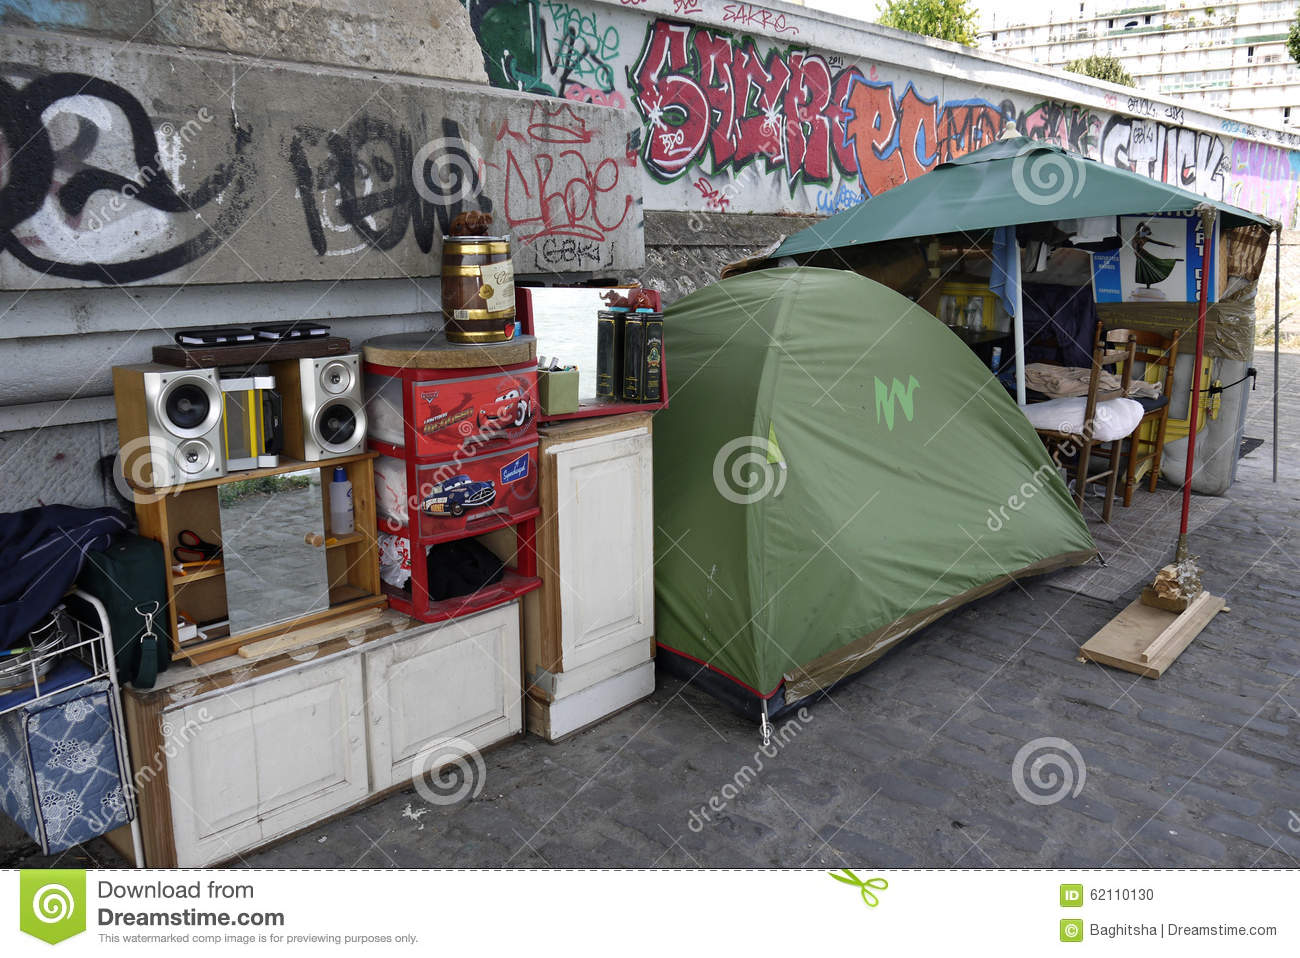 Shelter of a Homeless Person, France